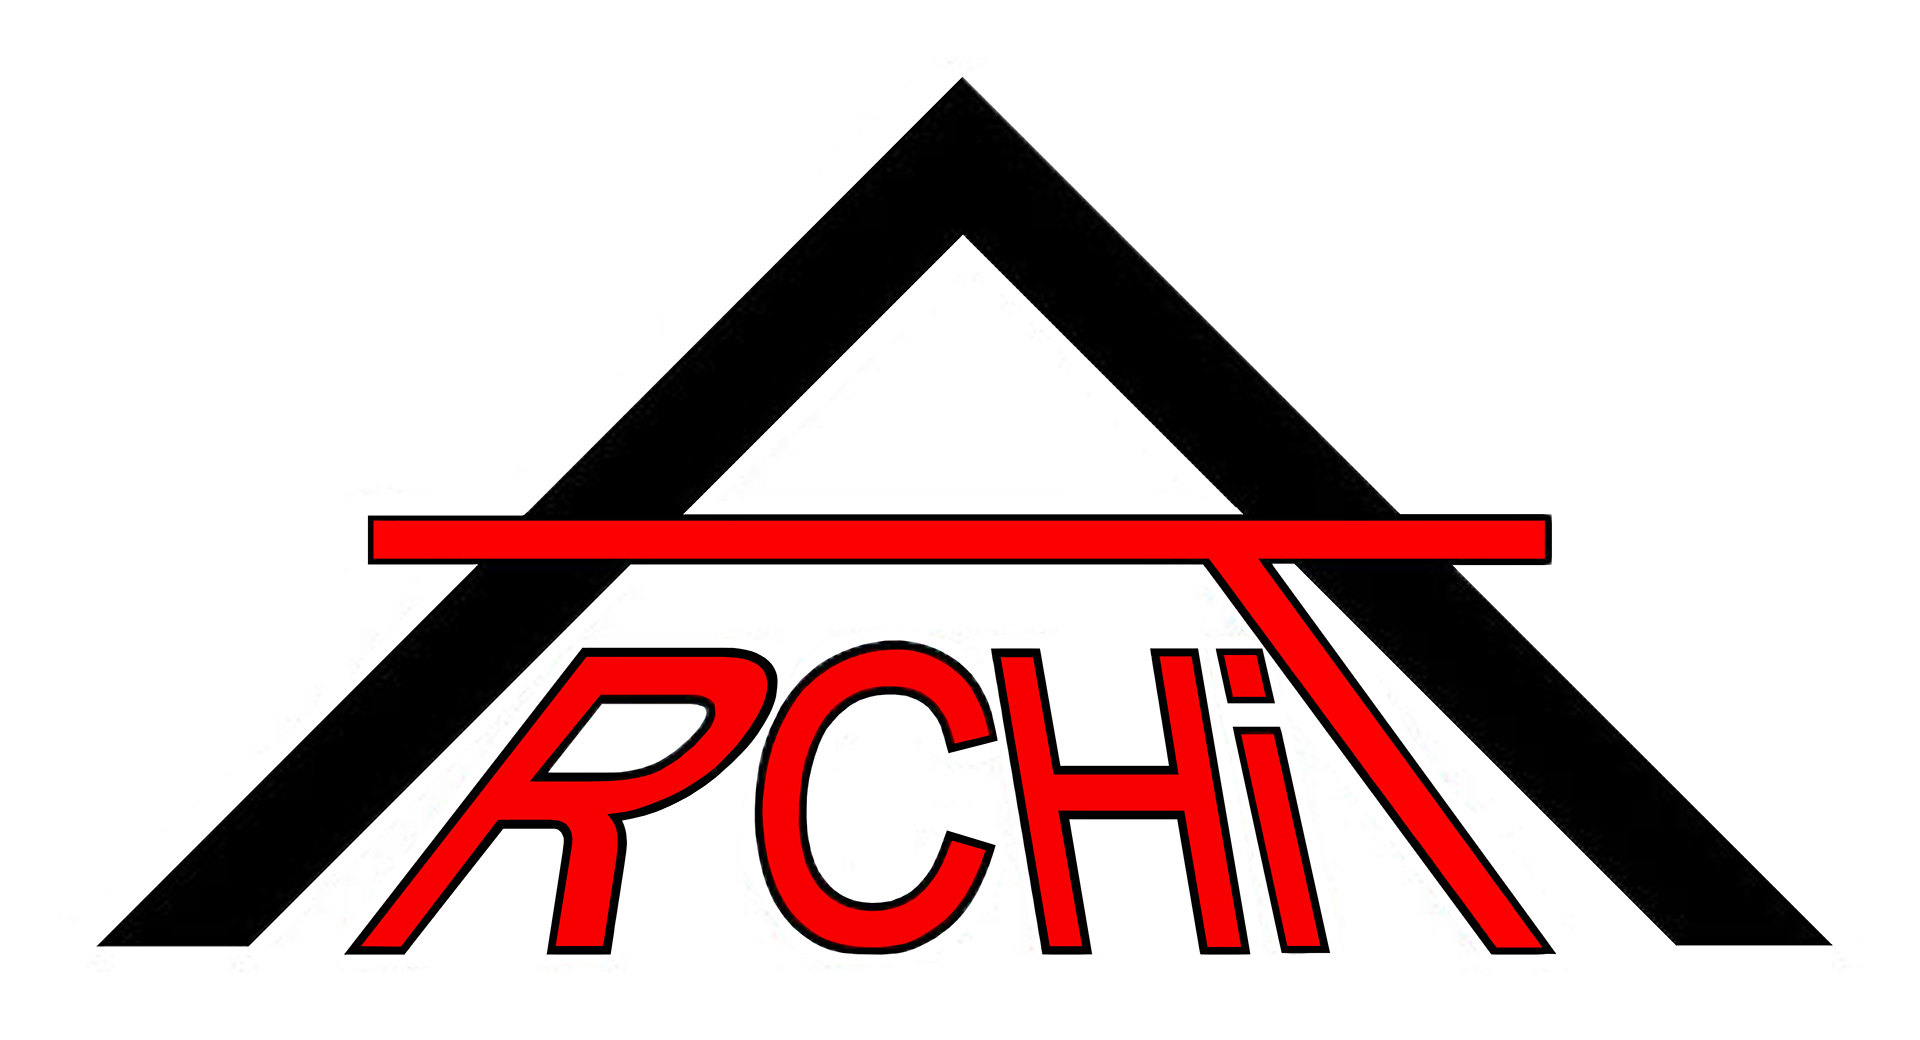 Archit logo